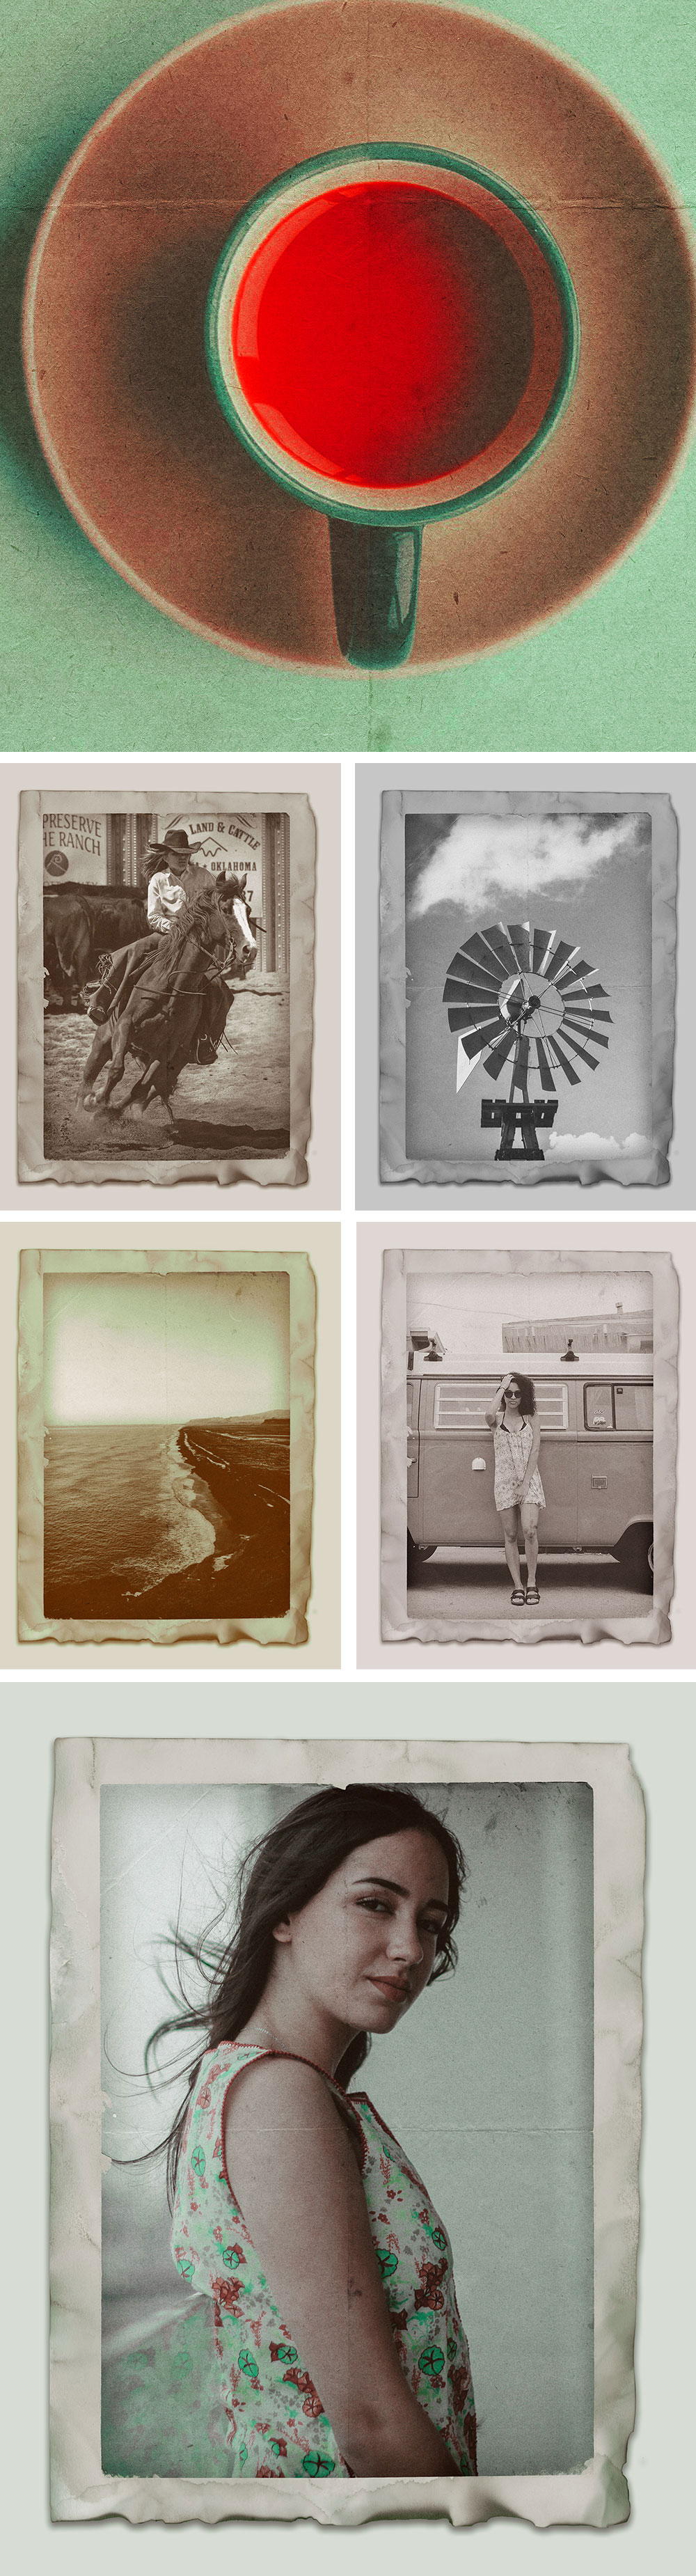 Vintage Photo Effect Design